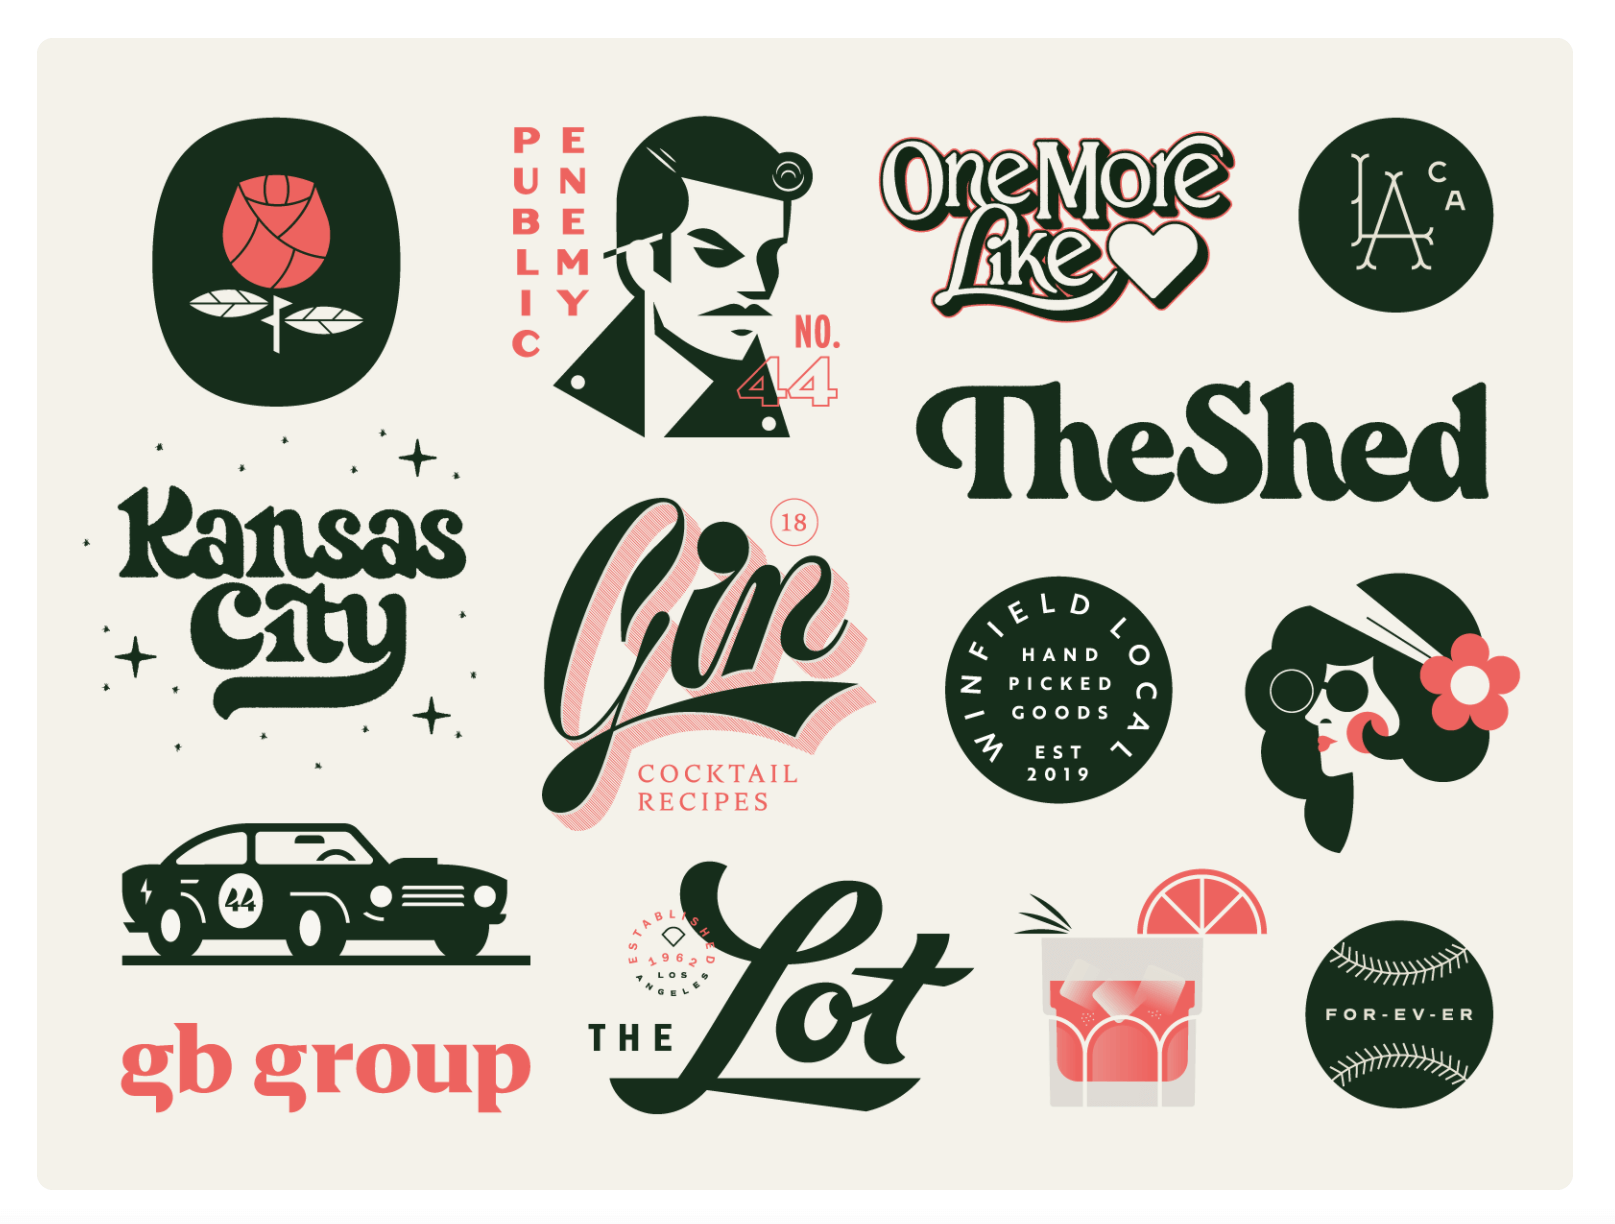 graphic retro design trends